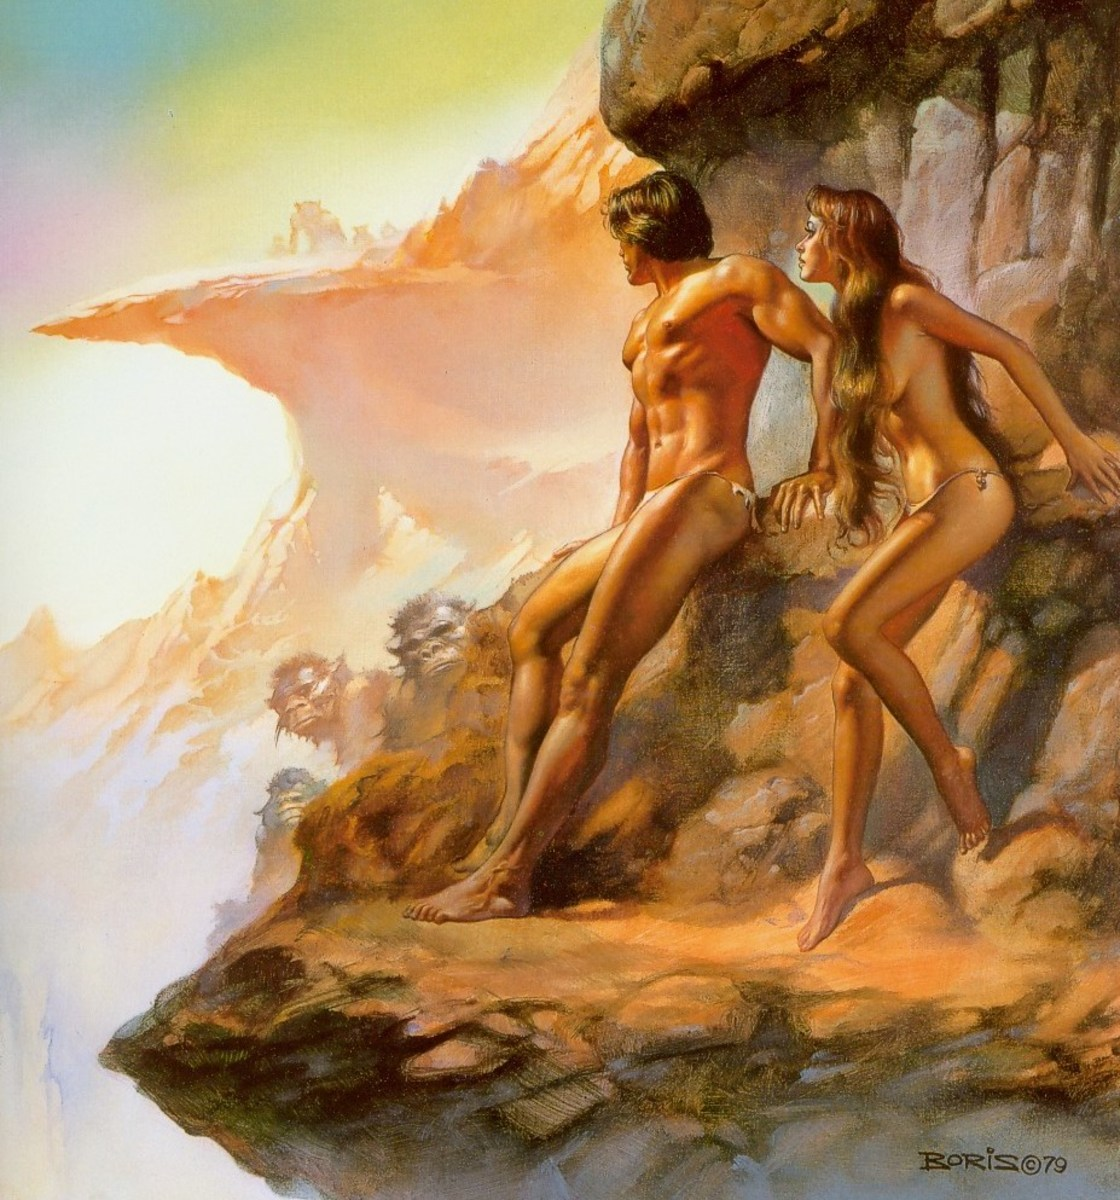 The World of Tiers - art by Boris Vallejo